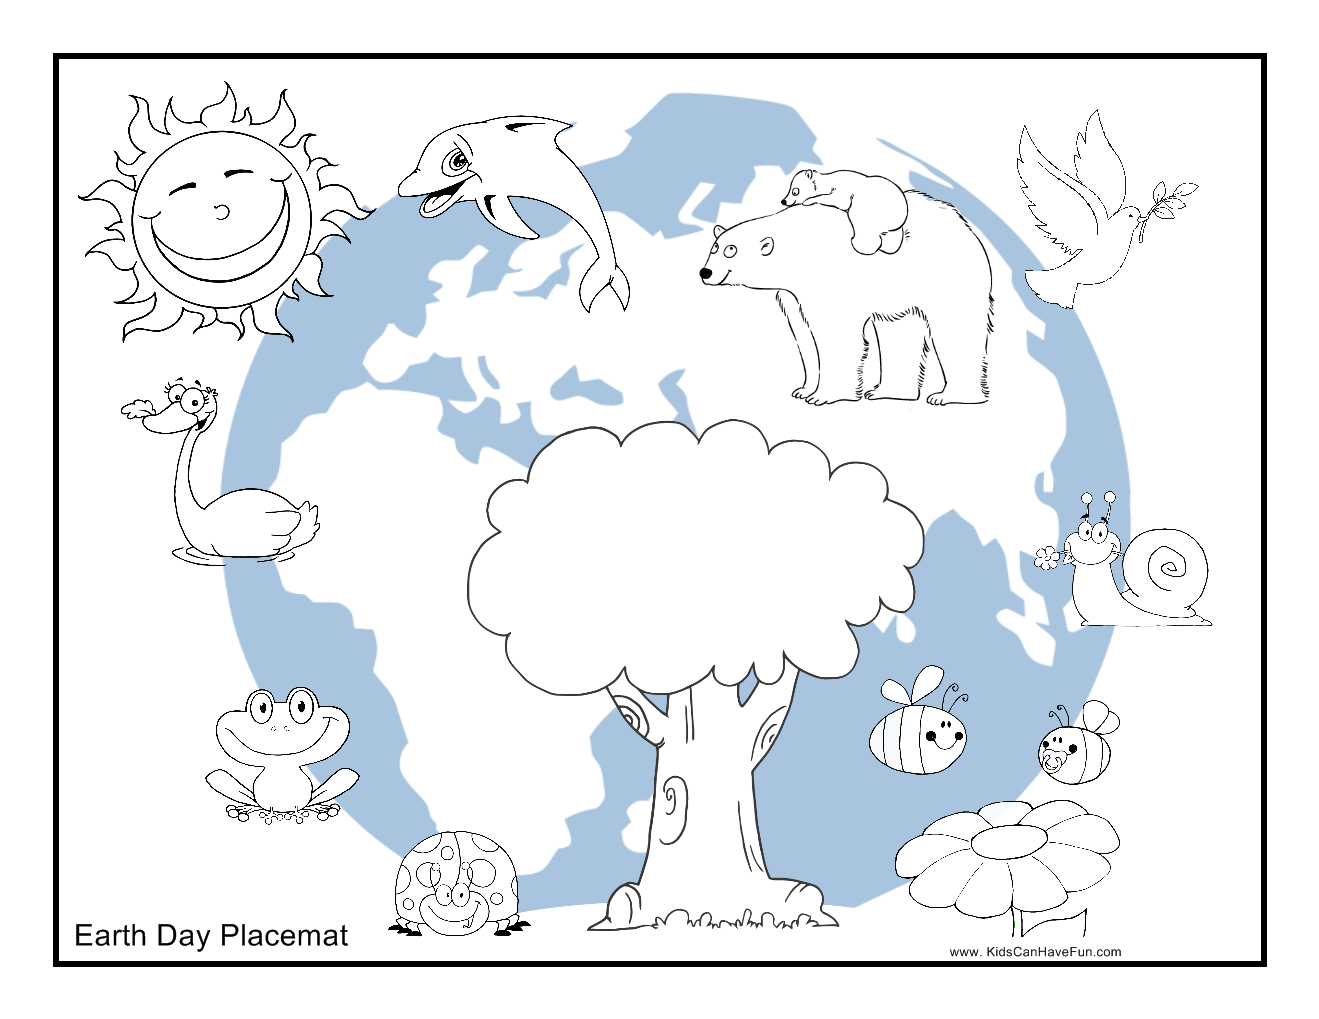 worksheet Free Earth Day Worksheets color earth day placemat to httpwww kidscanhavefun com poems printable cards and free worksheets etc